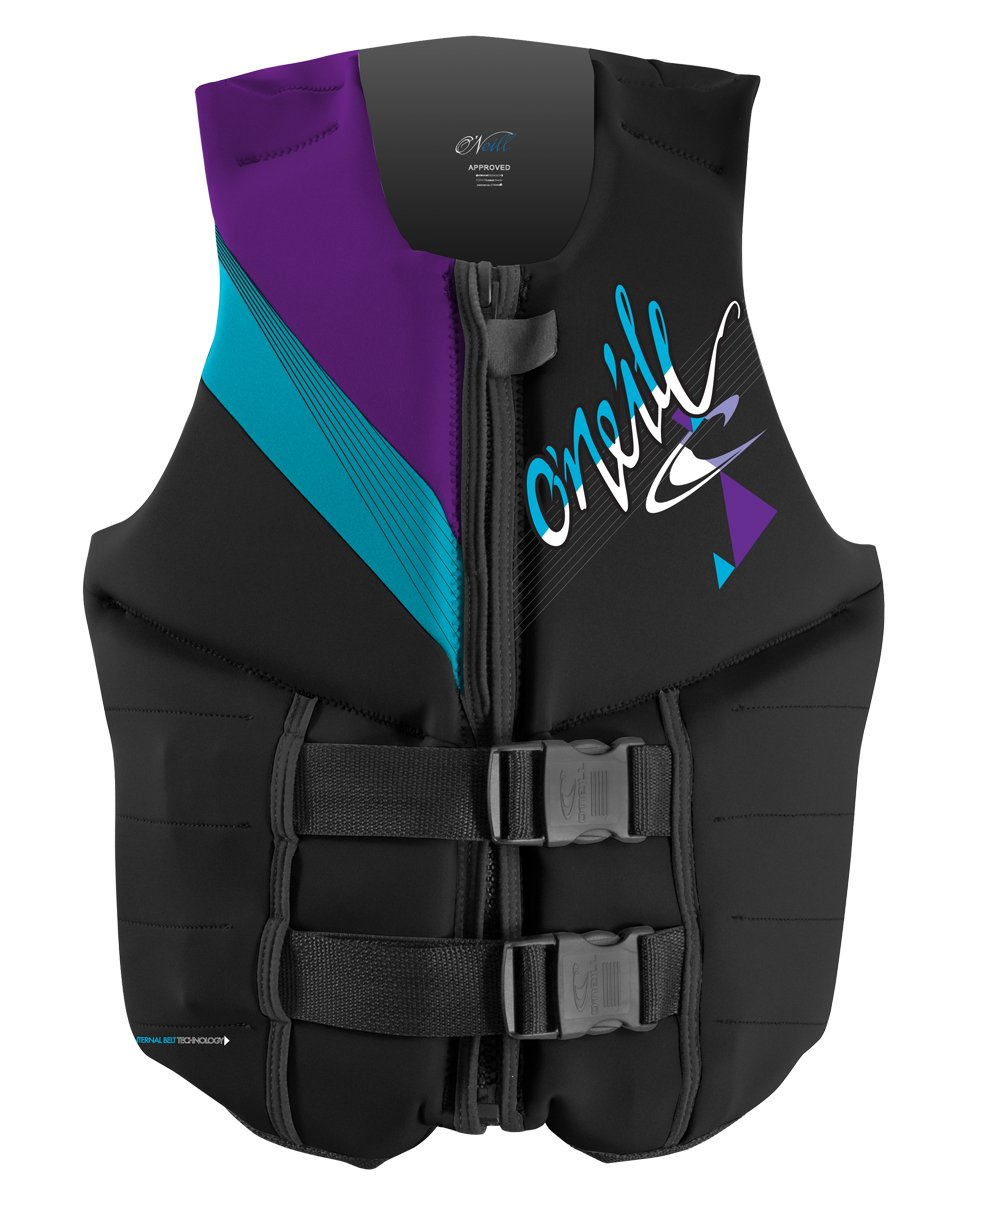 O'Neill Wake Waterski Women's Reactor 3 USCG Vest  (Black/Turquoise/Ultraviolet, 12) by O'Neill Wetsuits